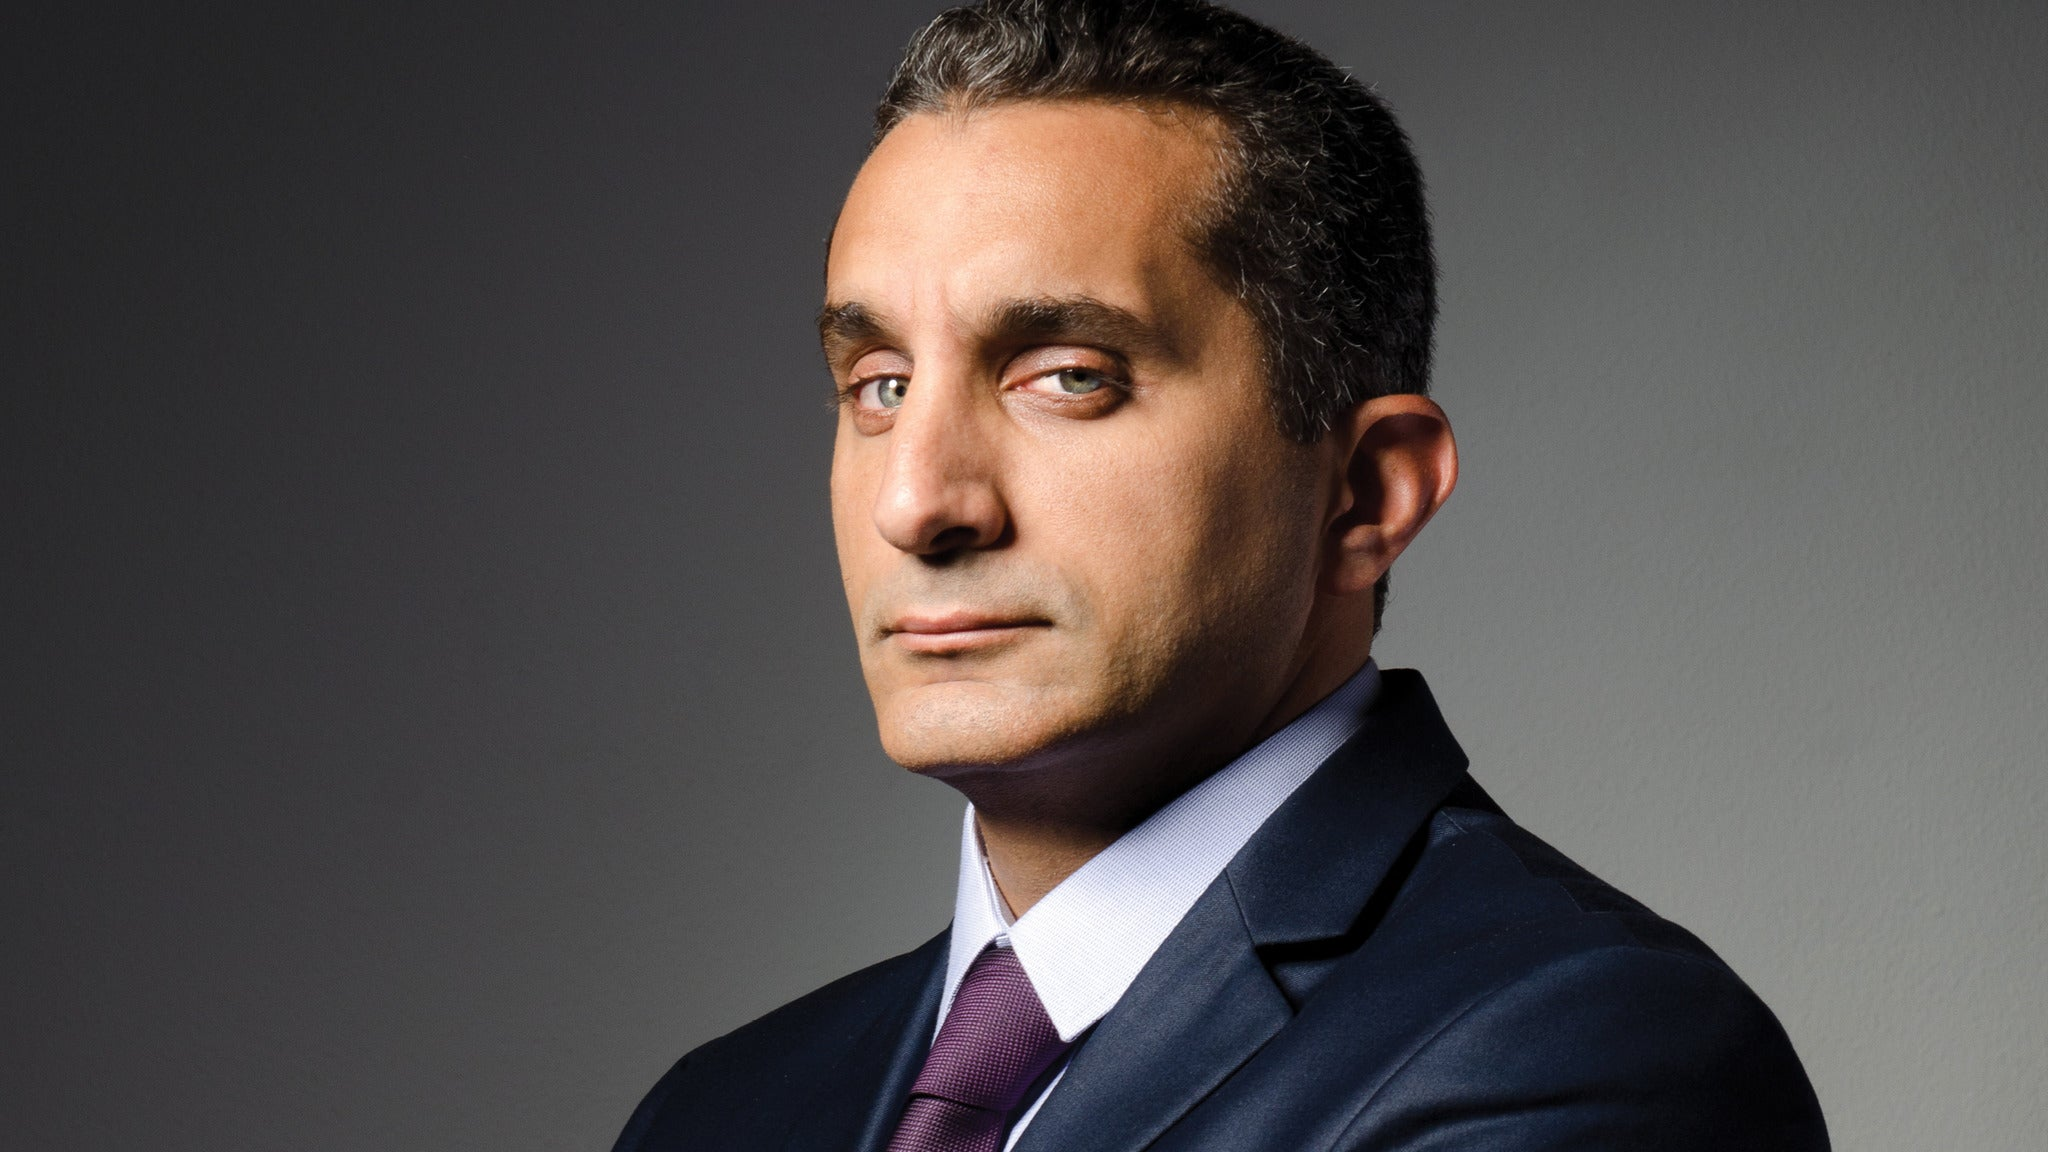 Bassem Youssef: The Joke Is Mightier than the Sword - Los Angeles, CA 90095